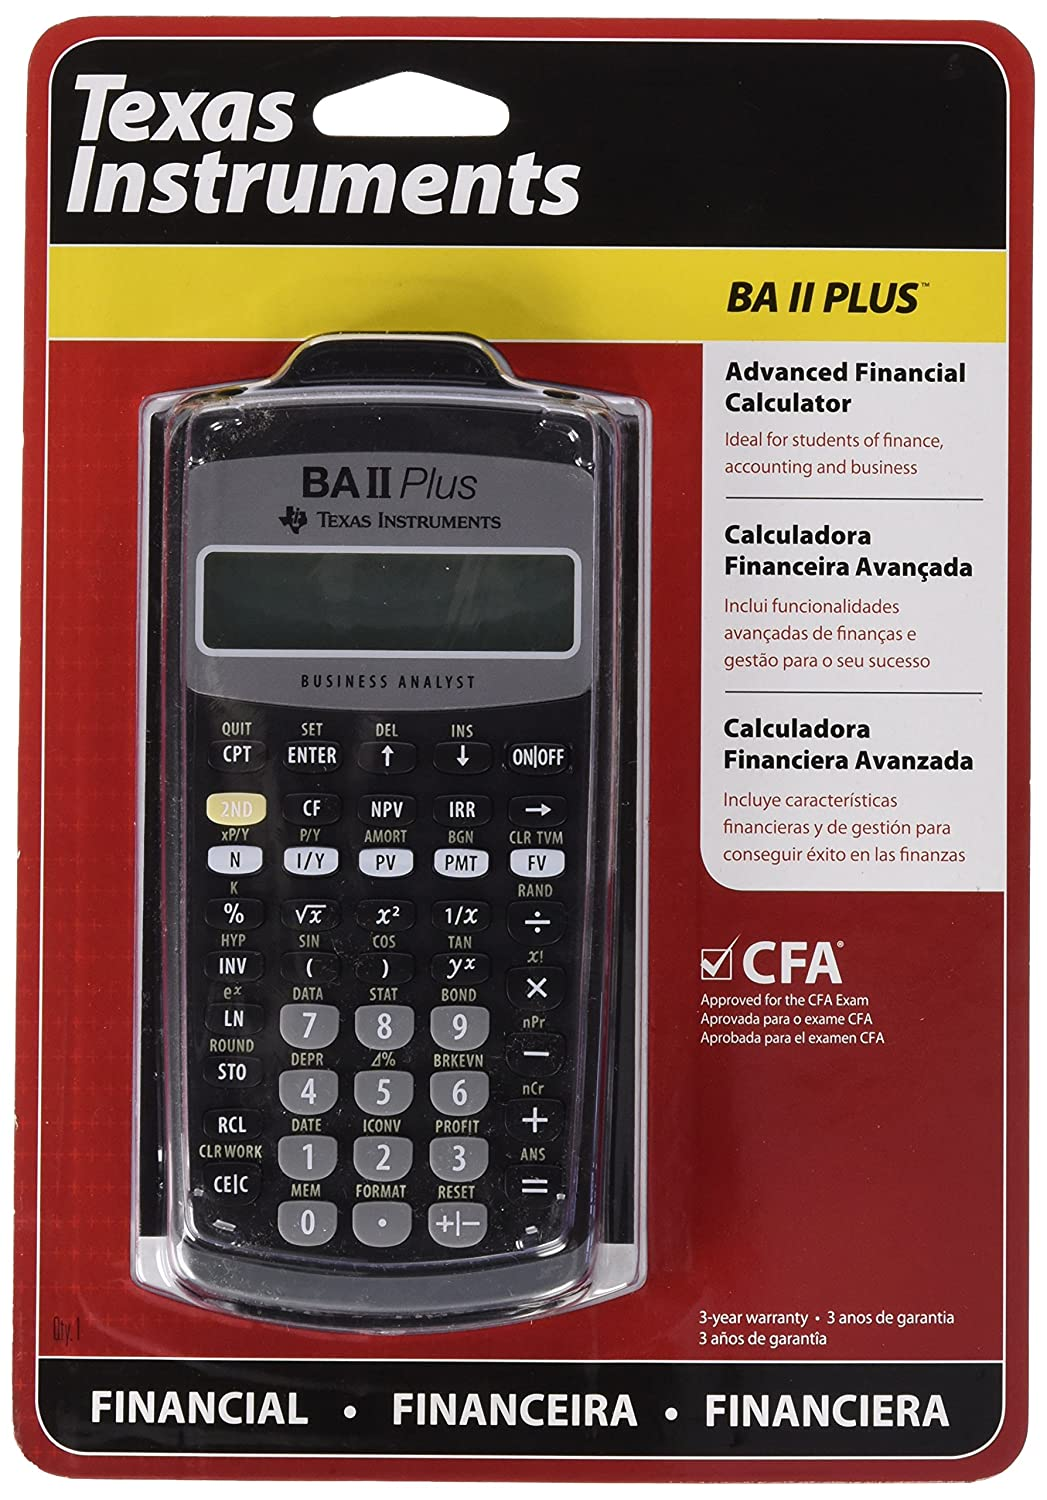 Texas Instruments BAII PLUS IIBAPL/BC/1L1/A BA-II-PLUS